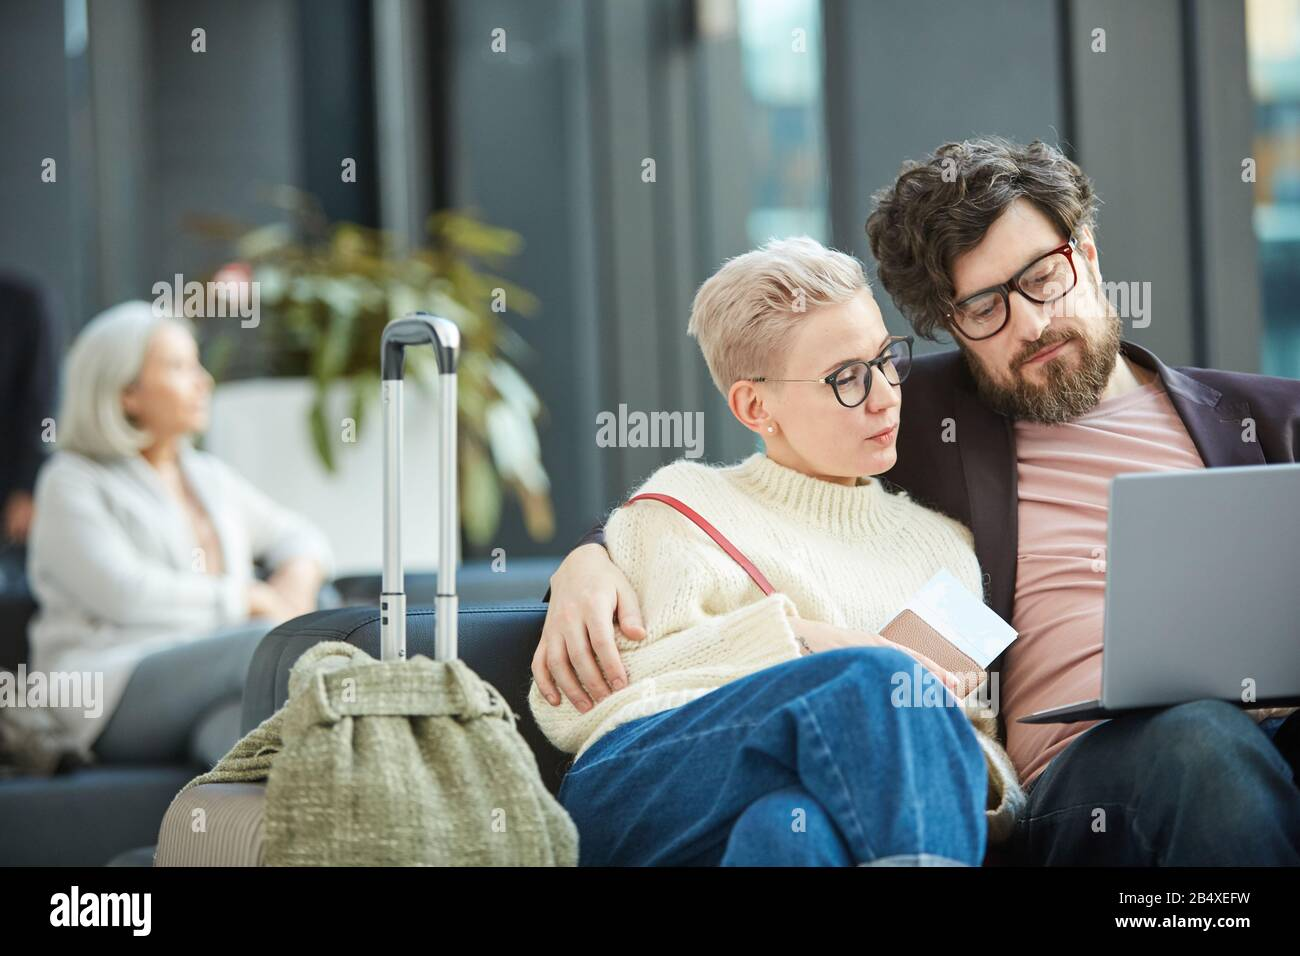 Young Man And Woman In Love Sitting Together In Departure Lounge Waiting For Flight Watching Something On Their Laptop Copy Space Stock Photo Alamy